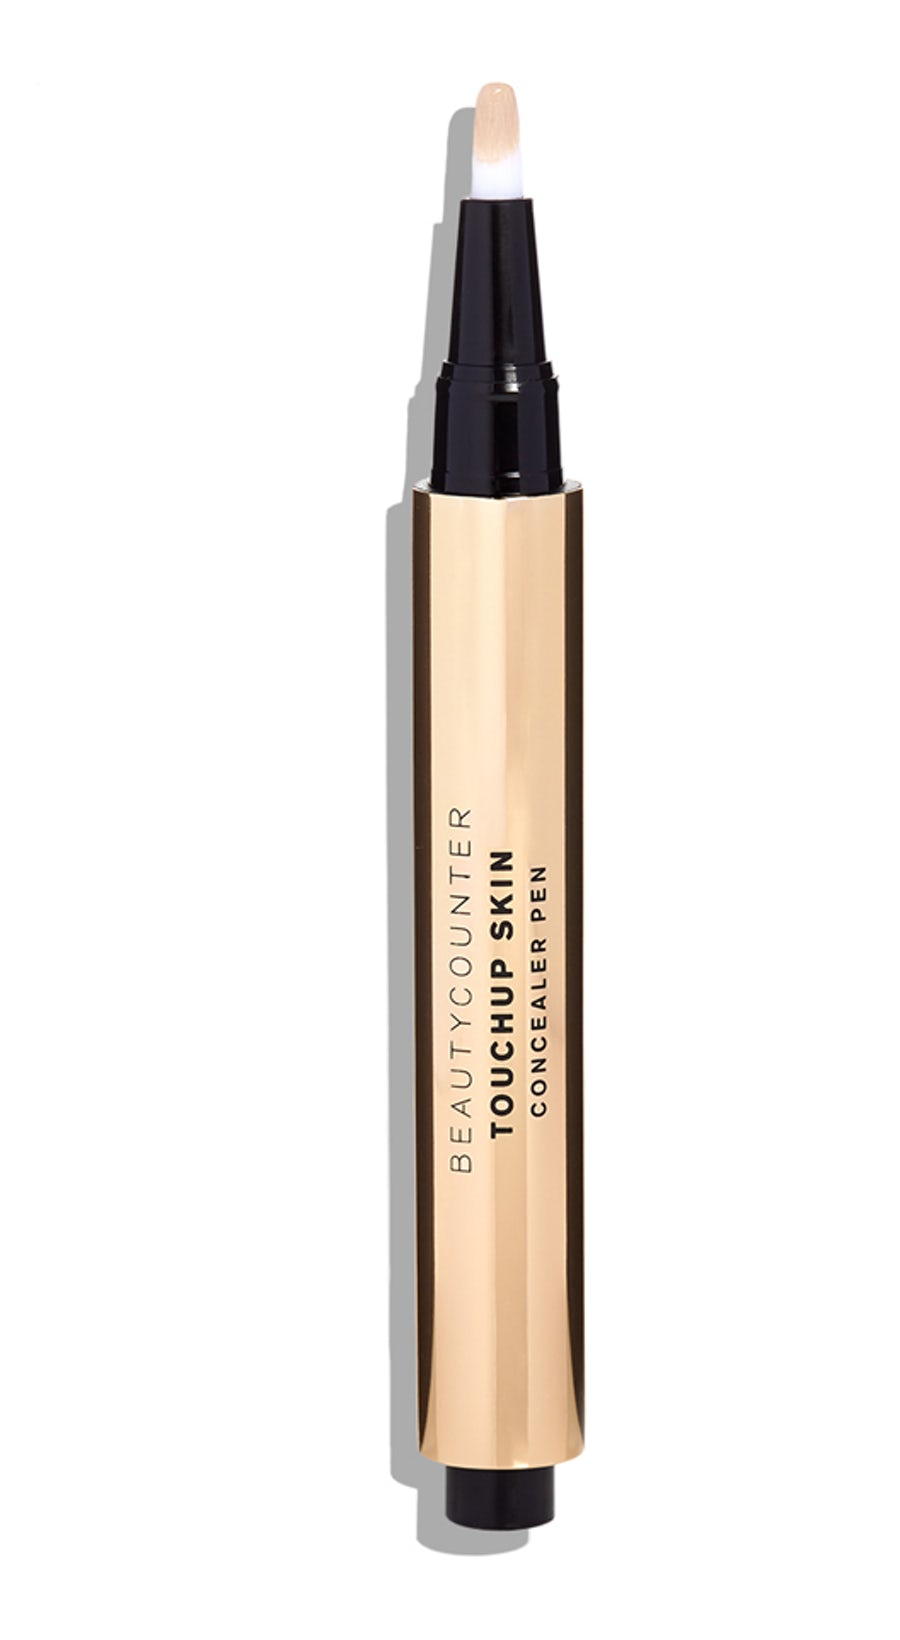 product-images_2405_imgs_base_fair_pdp-touchupskinconcealerpen-fair_selling-shot_528x962_1.jpg